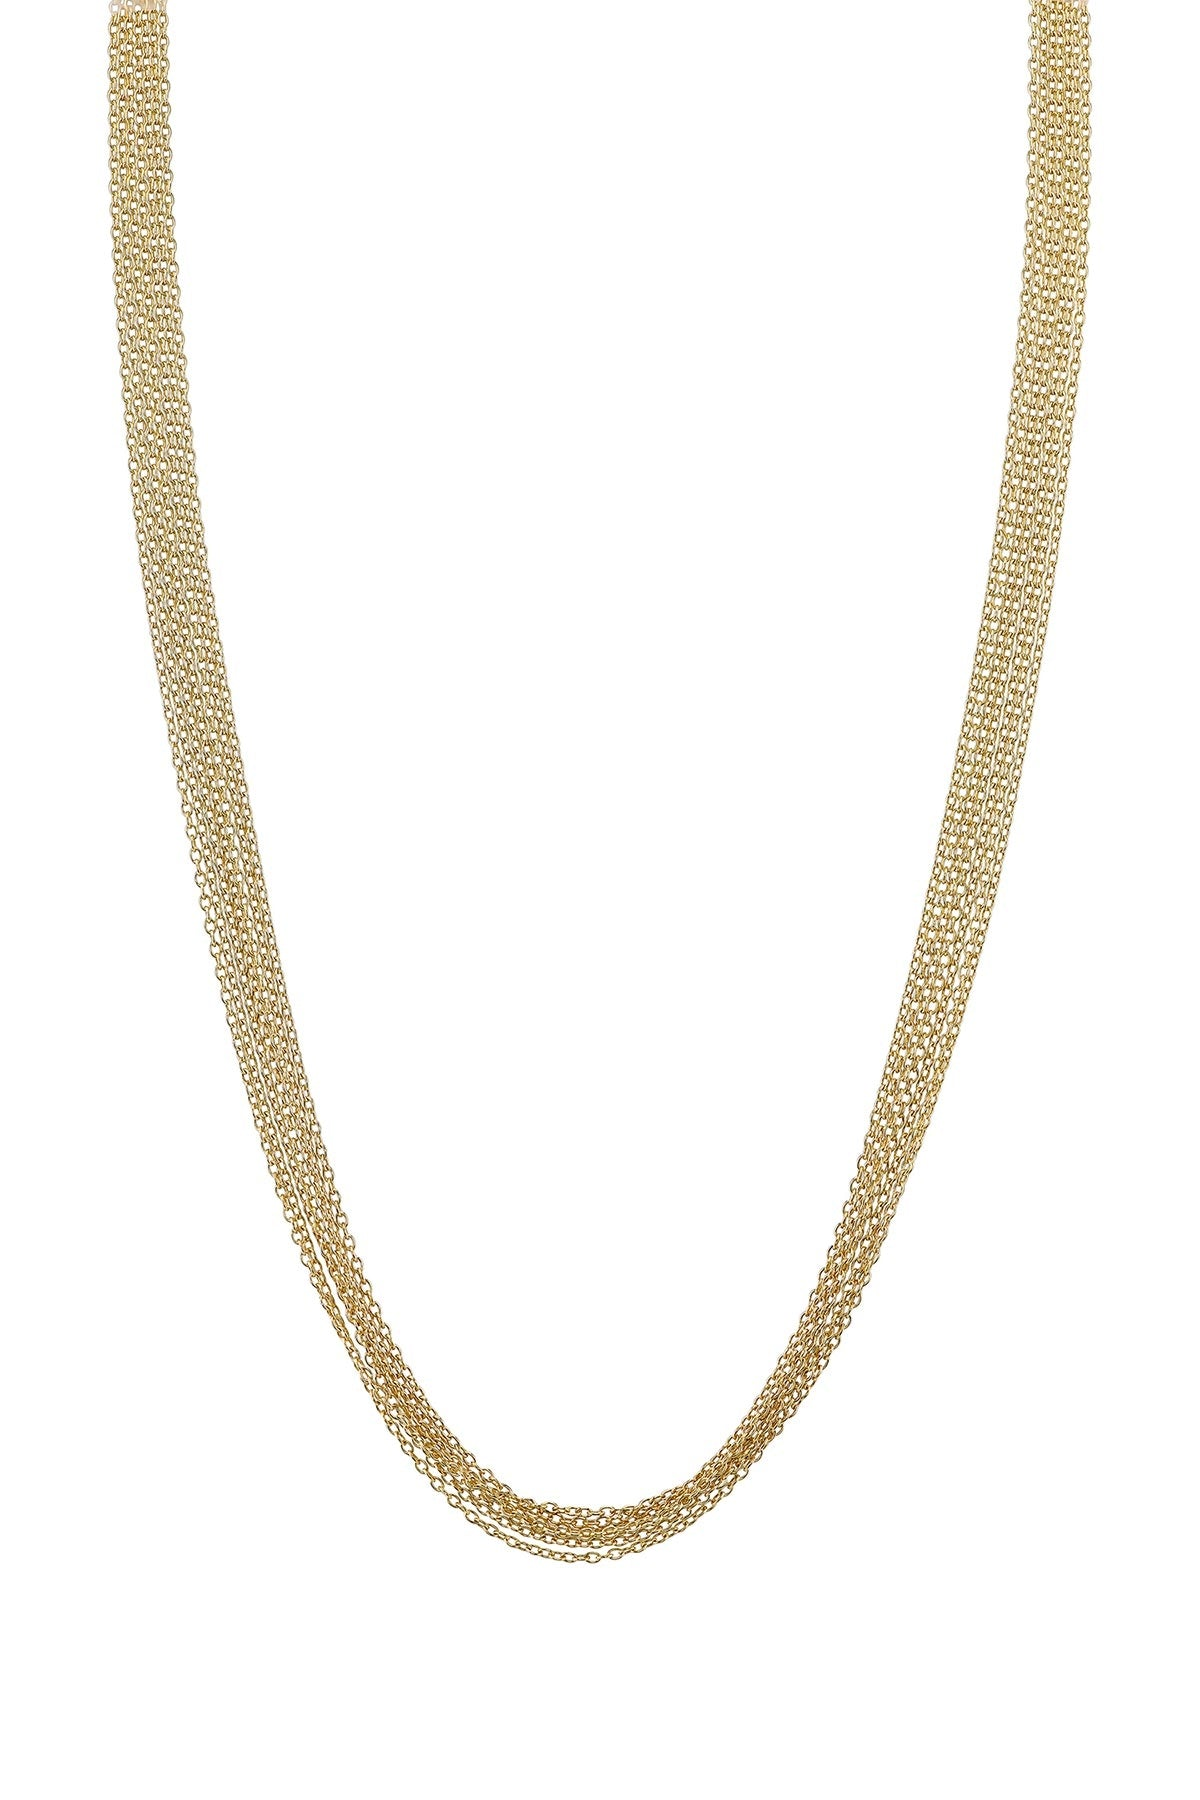 SEVEN STRAND NECKLACE BY SLOAN